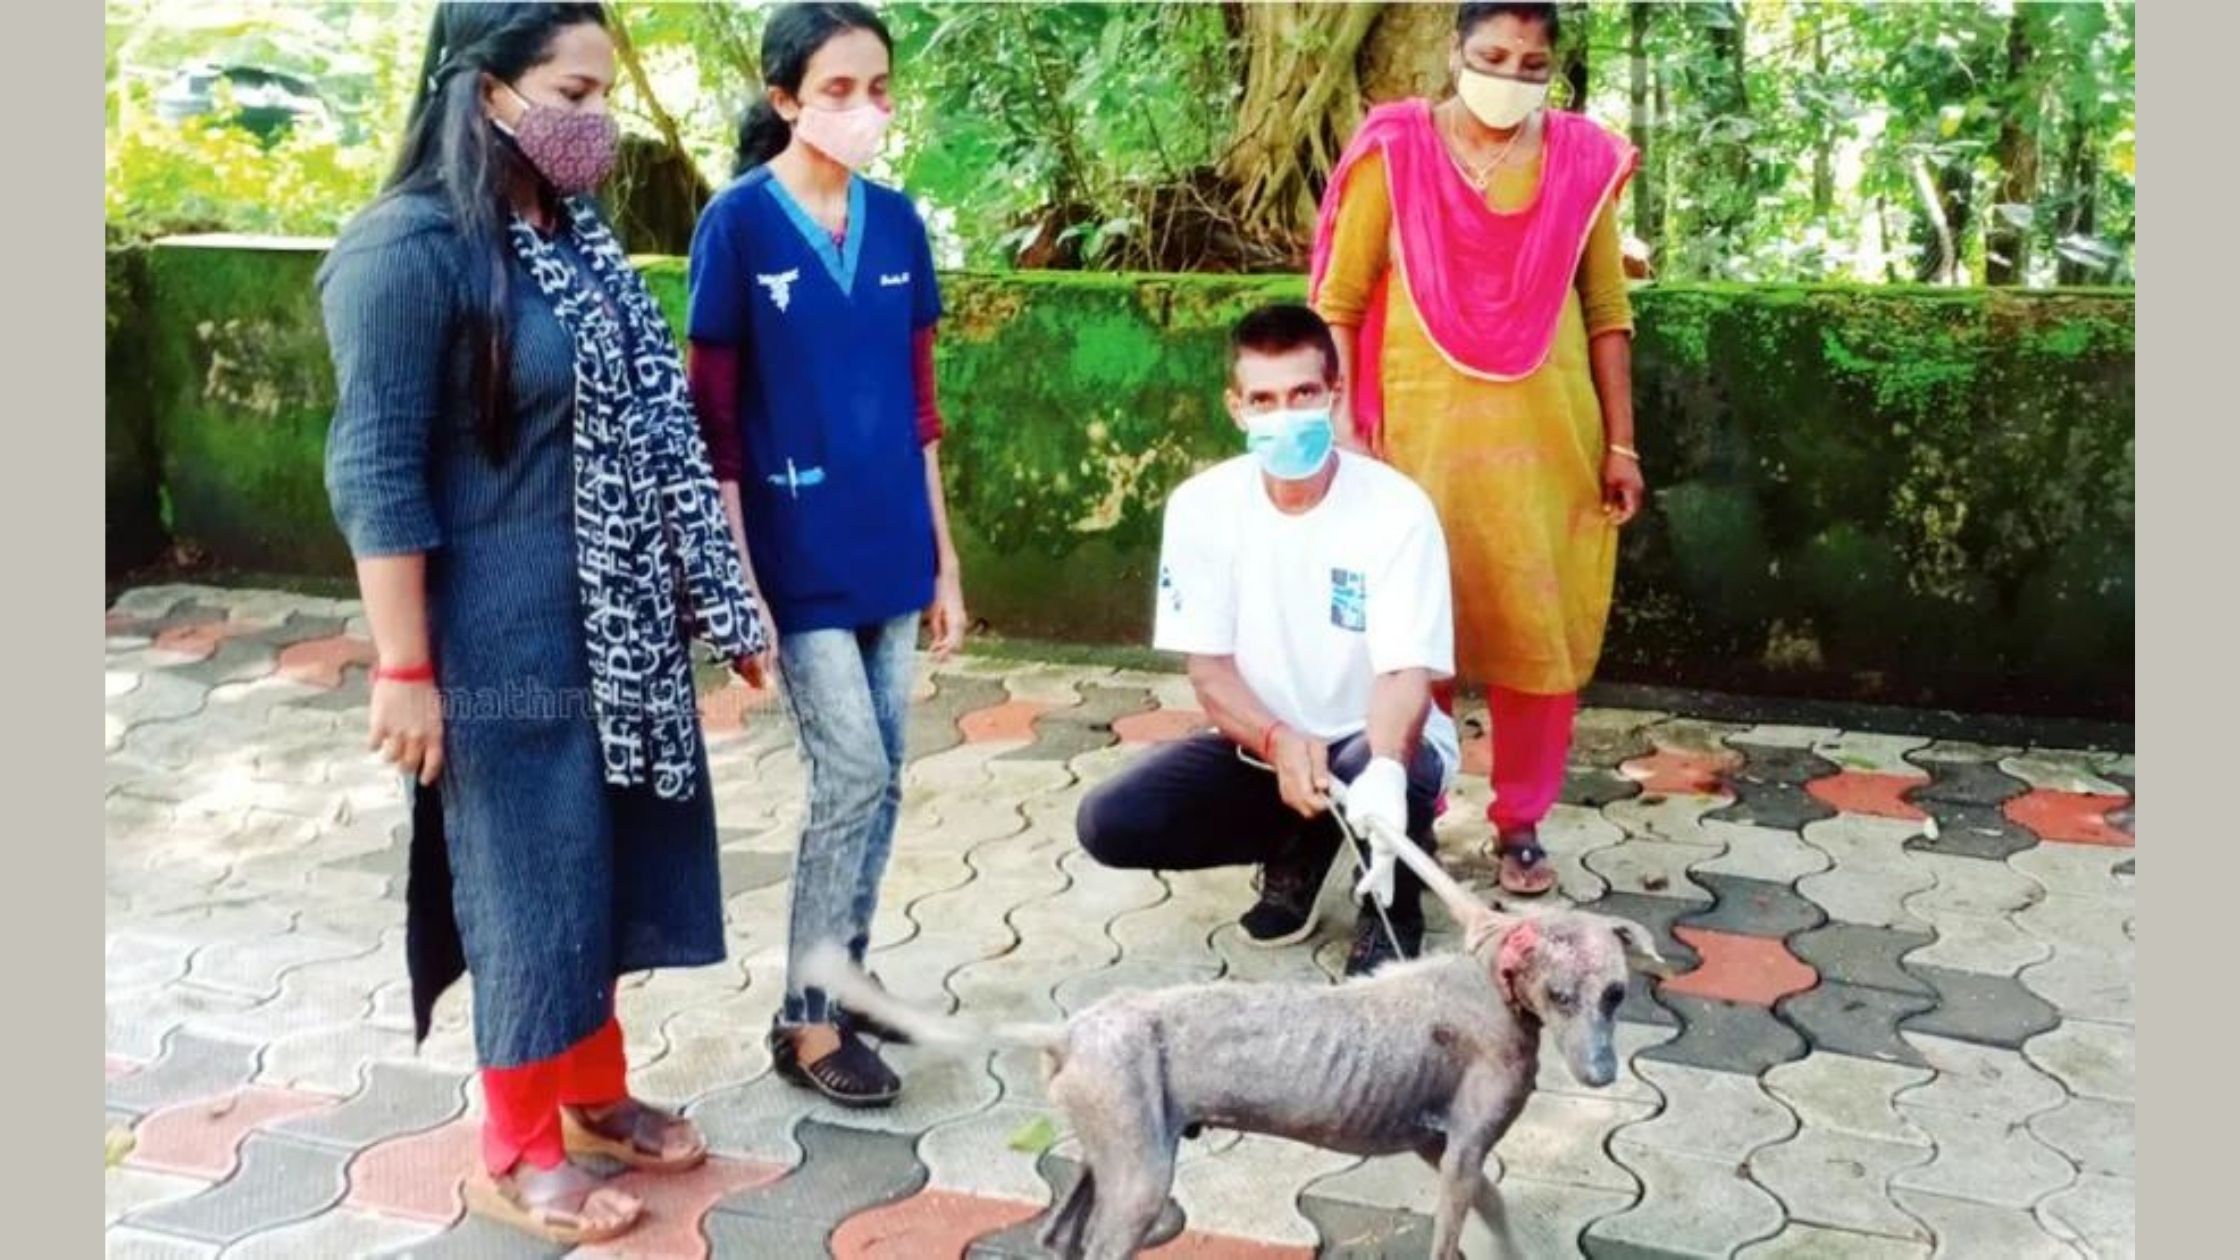 Dog saved from death by social workers in Kottayam, India